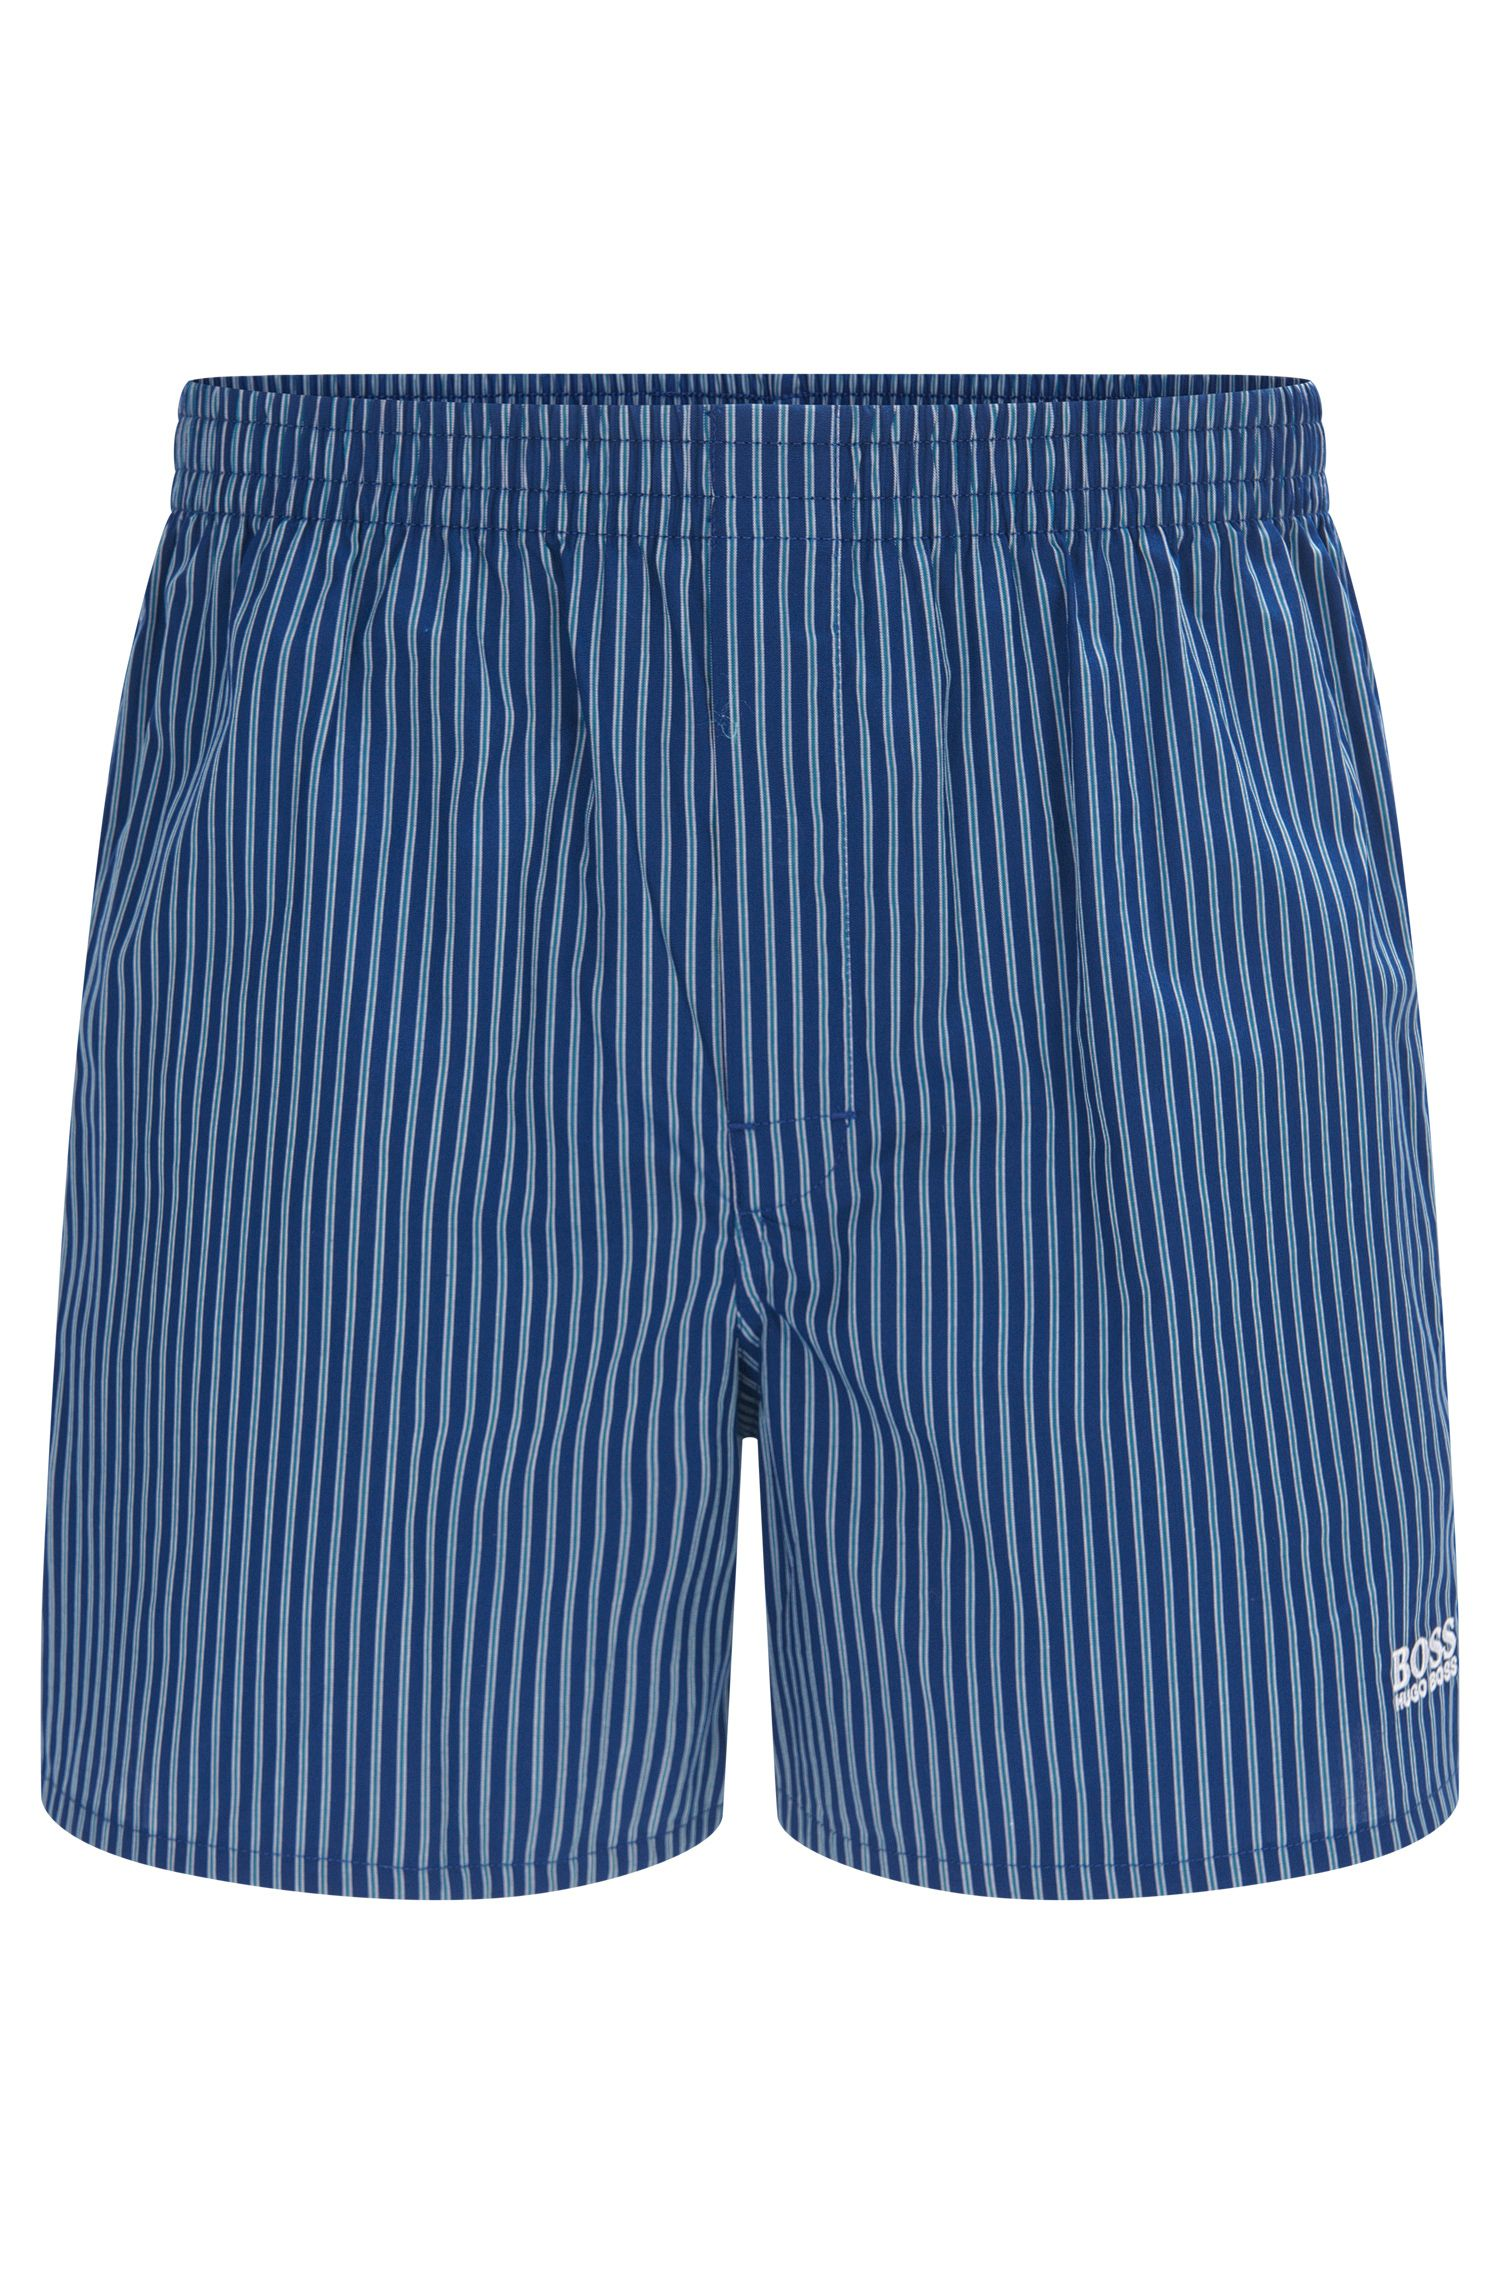 Boxer shorts in cotton with vertical stripes